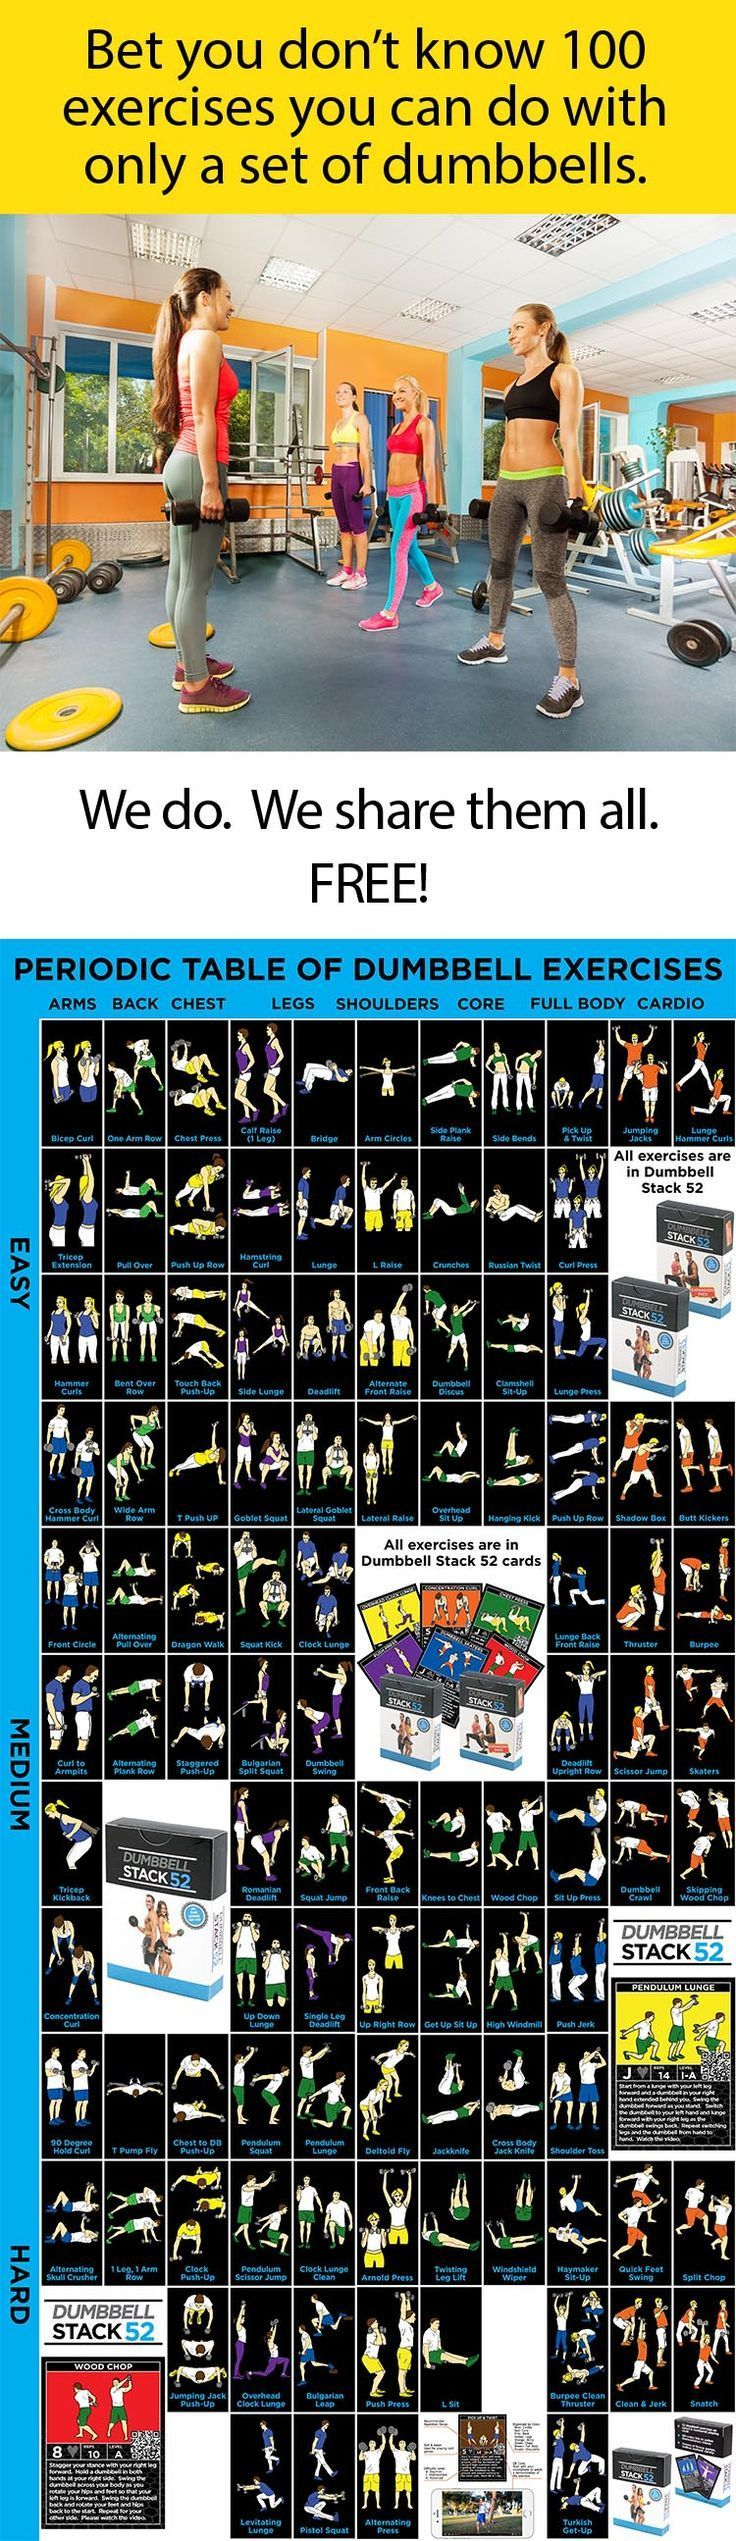 Best 25 full periodic table ideas on pinterest periodic table periodic table of dumbbell exercises gamestrikefo Gallery